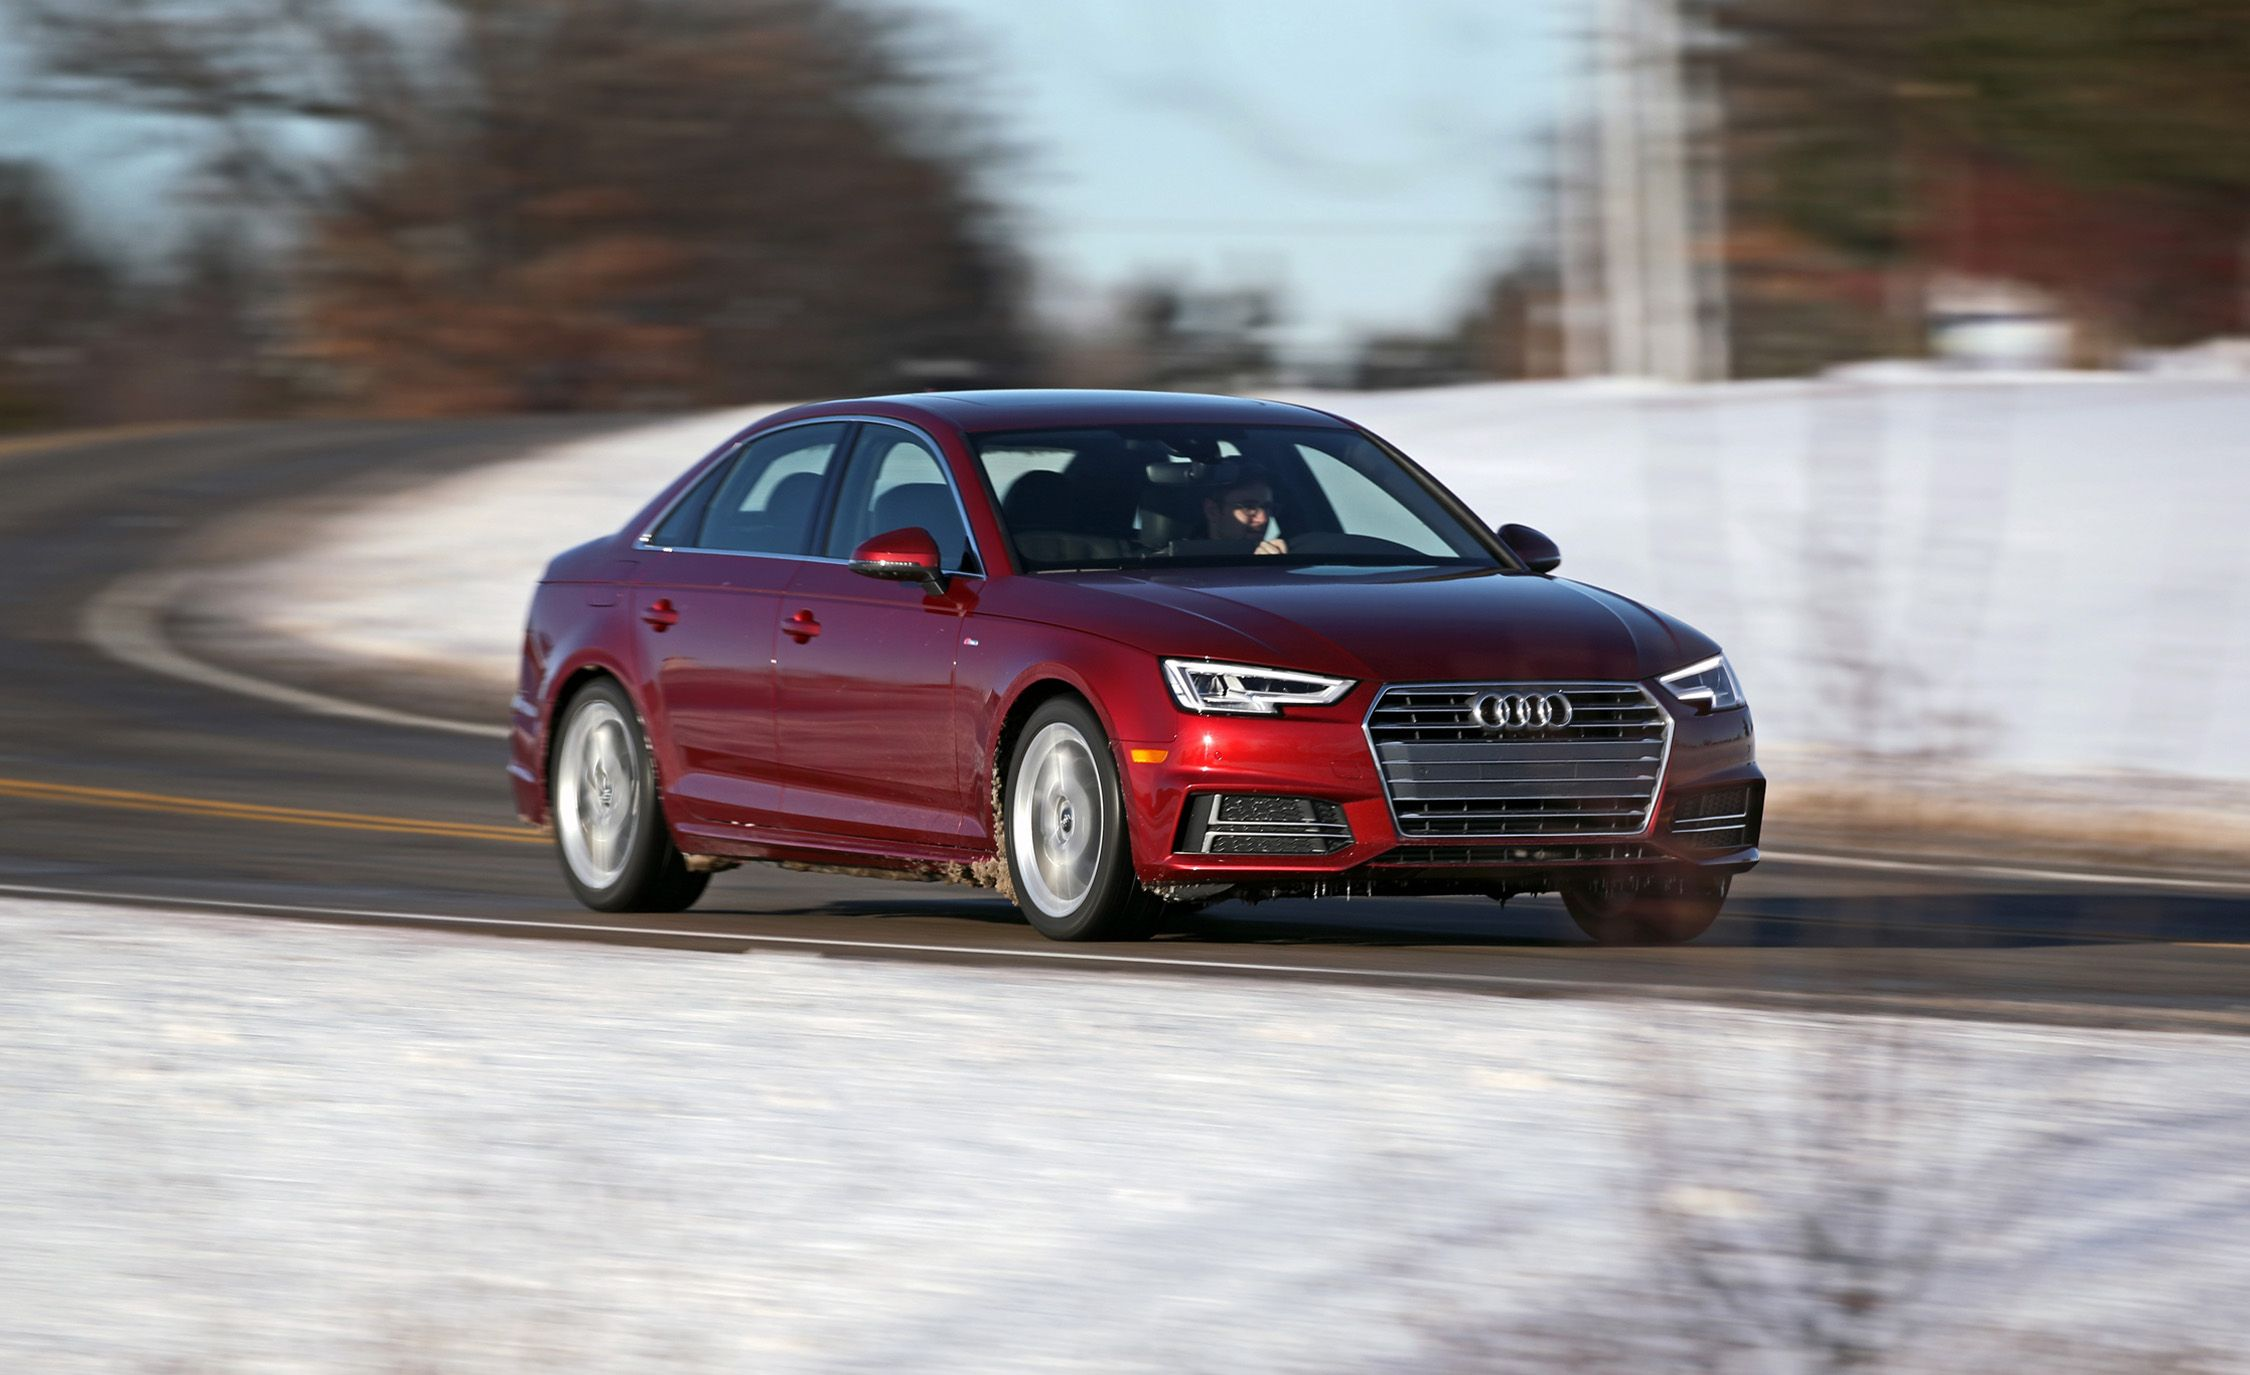 2018 audi a4 2 0t quattro manual test review car and driver rh caranddriver com Audi A4 Manual Transmission audi a4 2010 audio system manual